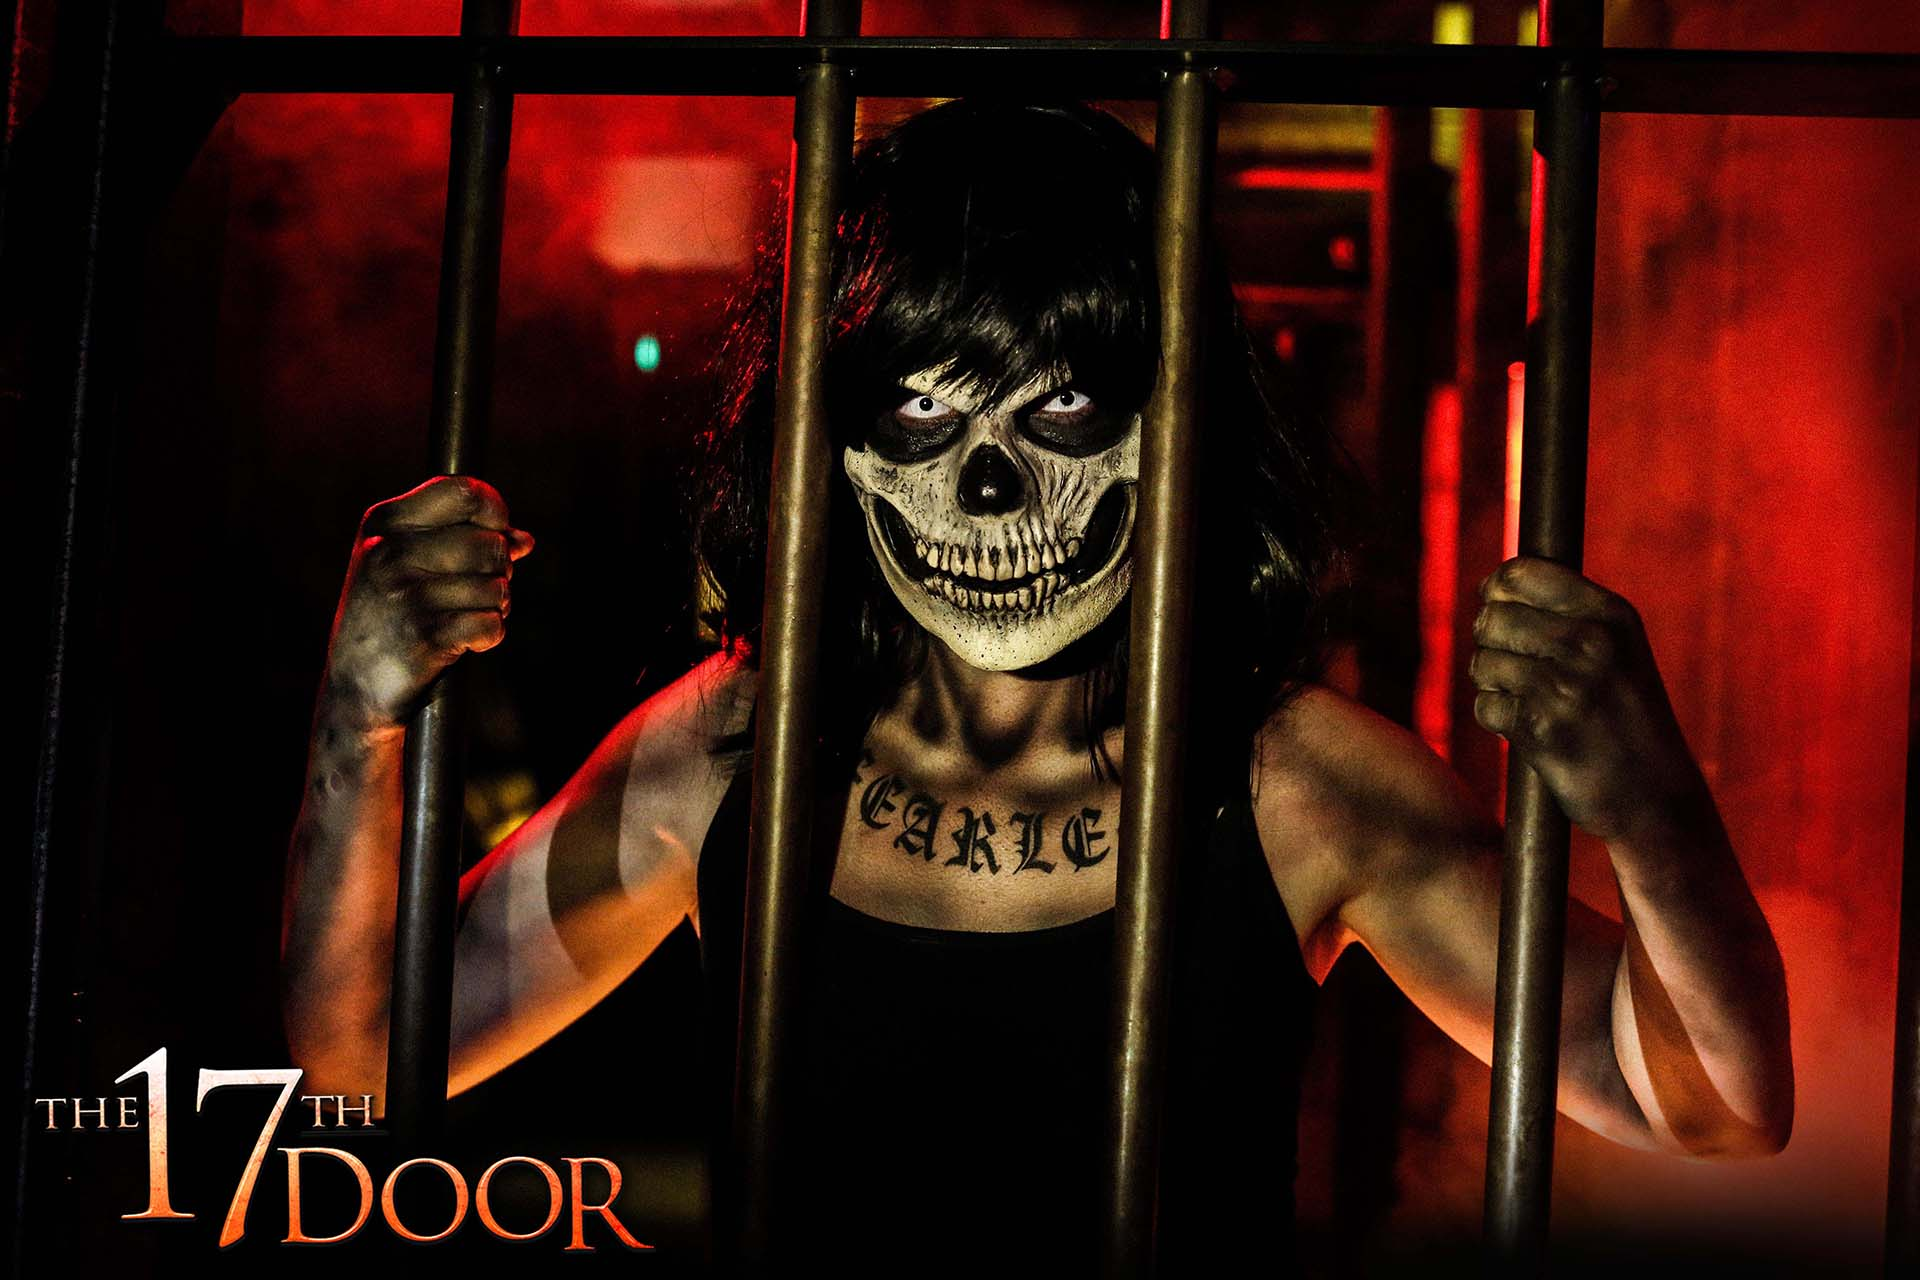 Guests join along in Paula's quest for redemption this year.  (Photo courtesy of The 17th Door.)